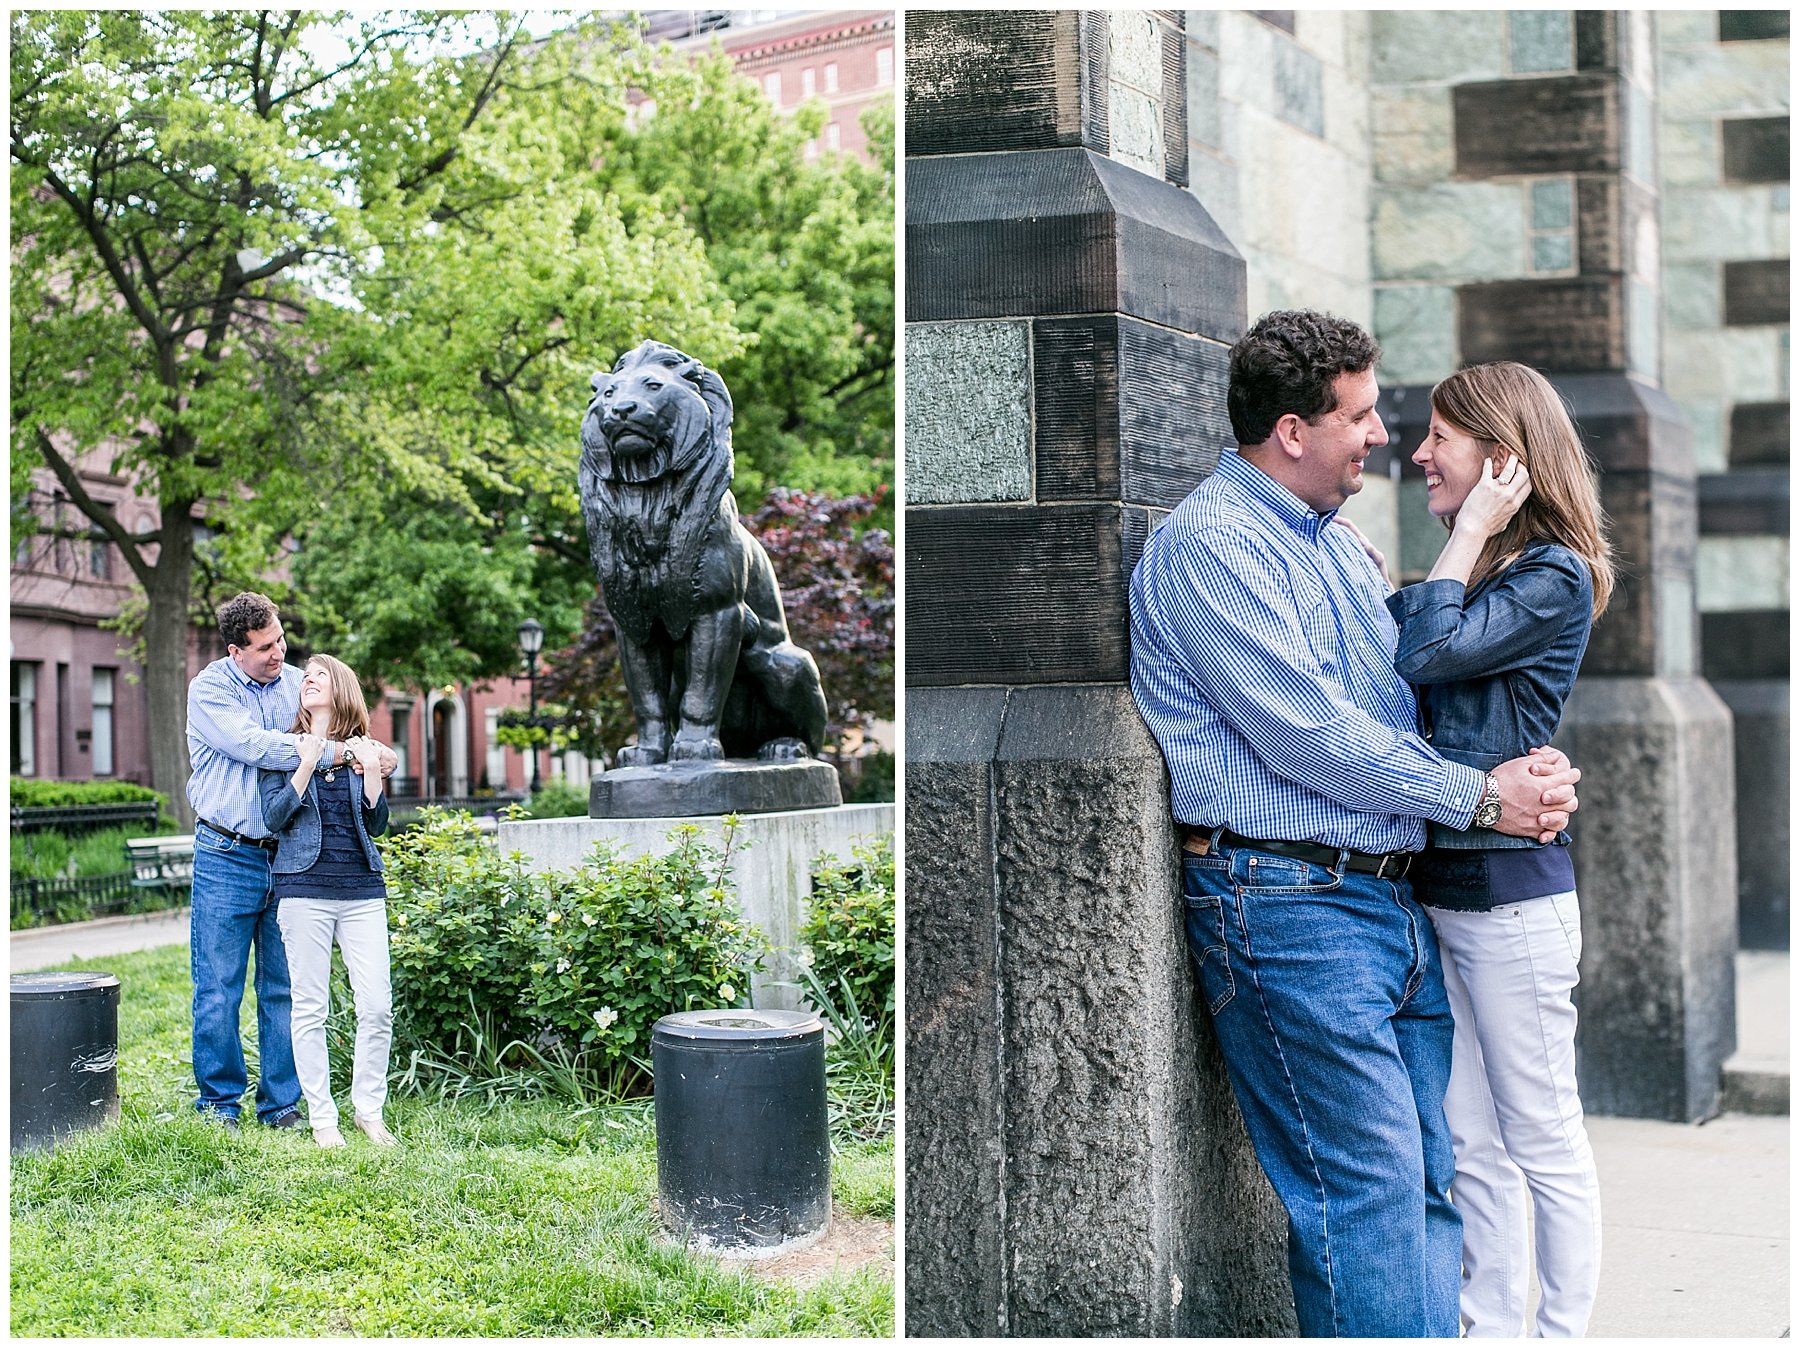 Tom Melissa Mt. Vernon Baltimore Engagement Session Living Radiant Photography photos_0040.jpg